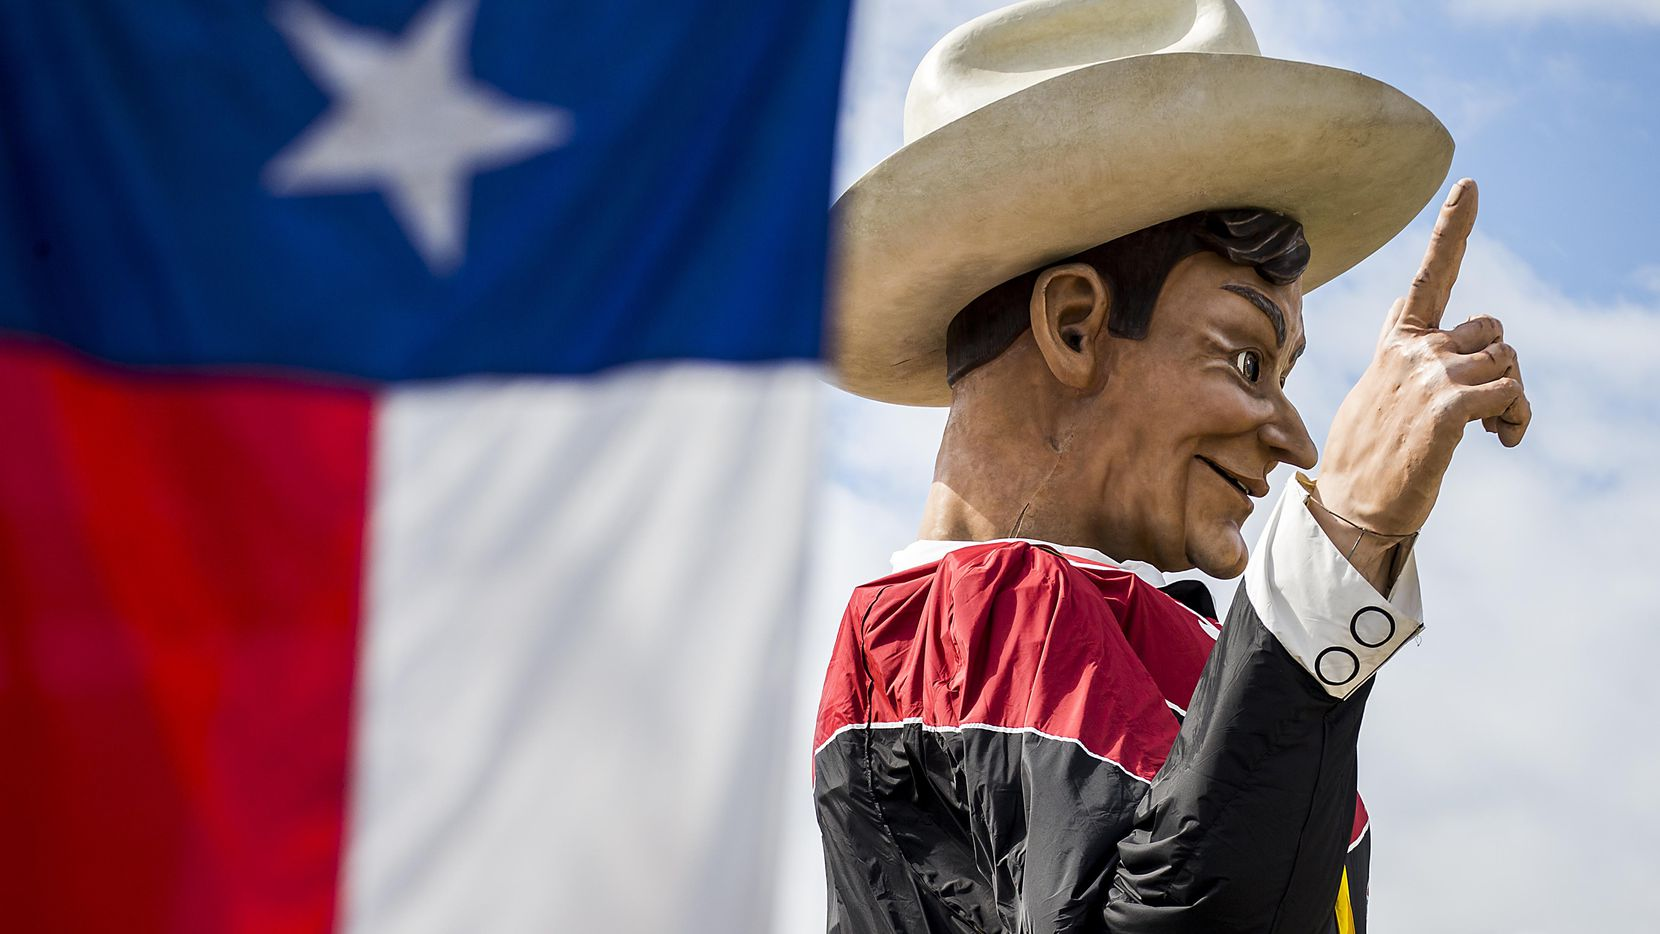 Big Tex looks down over Fair Park while being installed on Friday, Sept. 23, 2016, in Dallas. The State Fair of Texas opens on September 30 and runs through October 23.